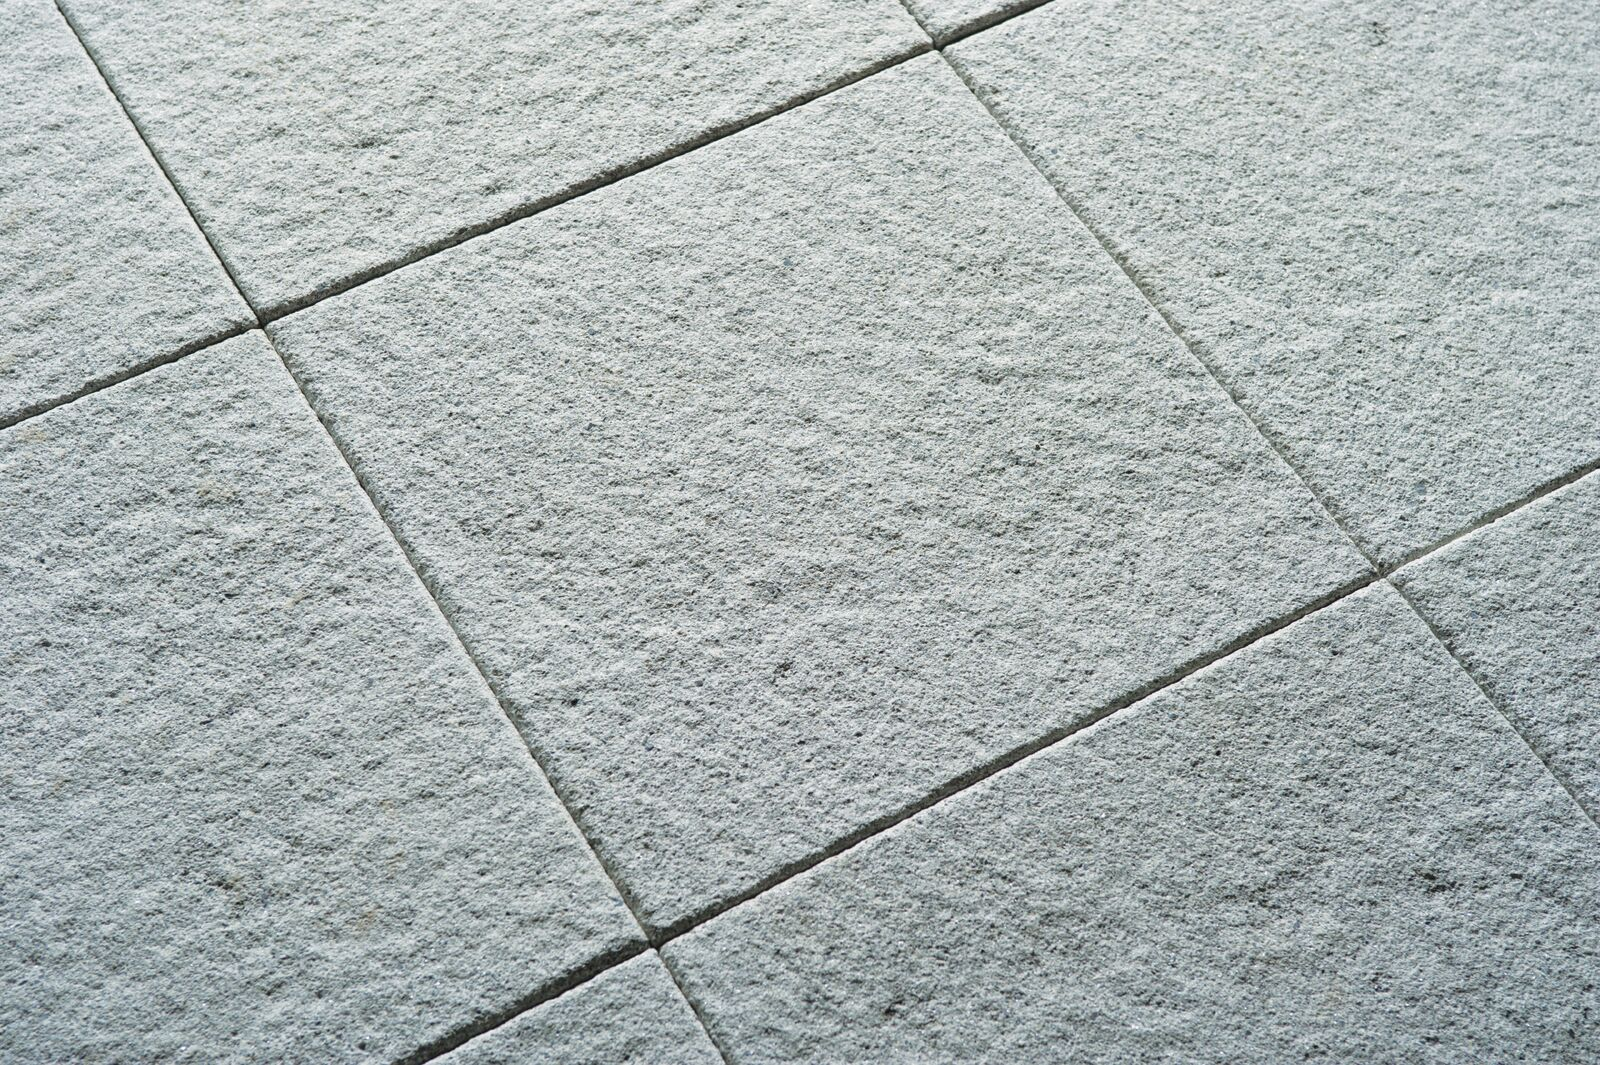 Granaza Paving Flag Textured Lux (Silver) 400x400x40mm (Bevel Edge)